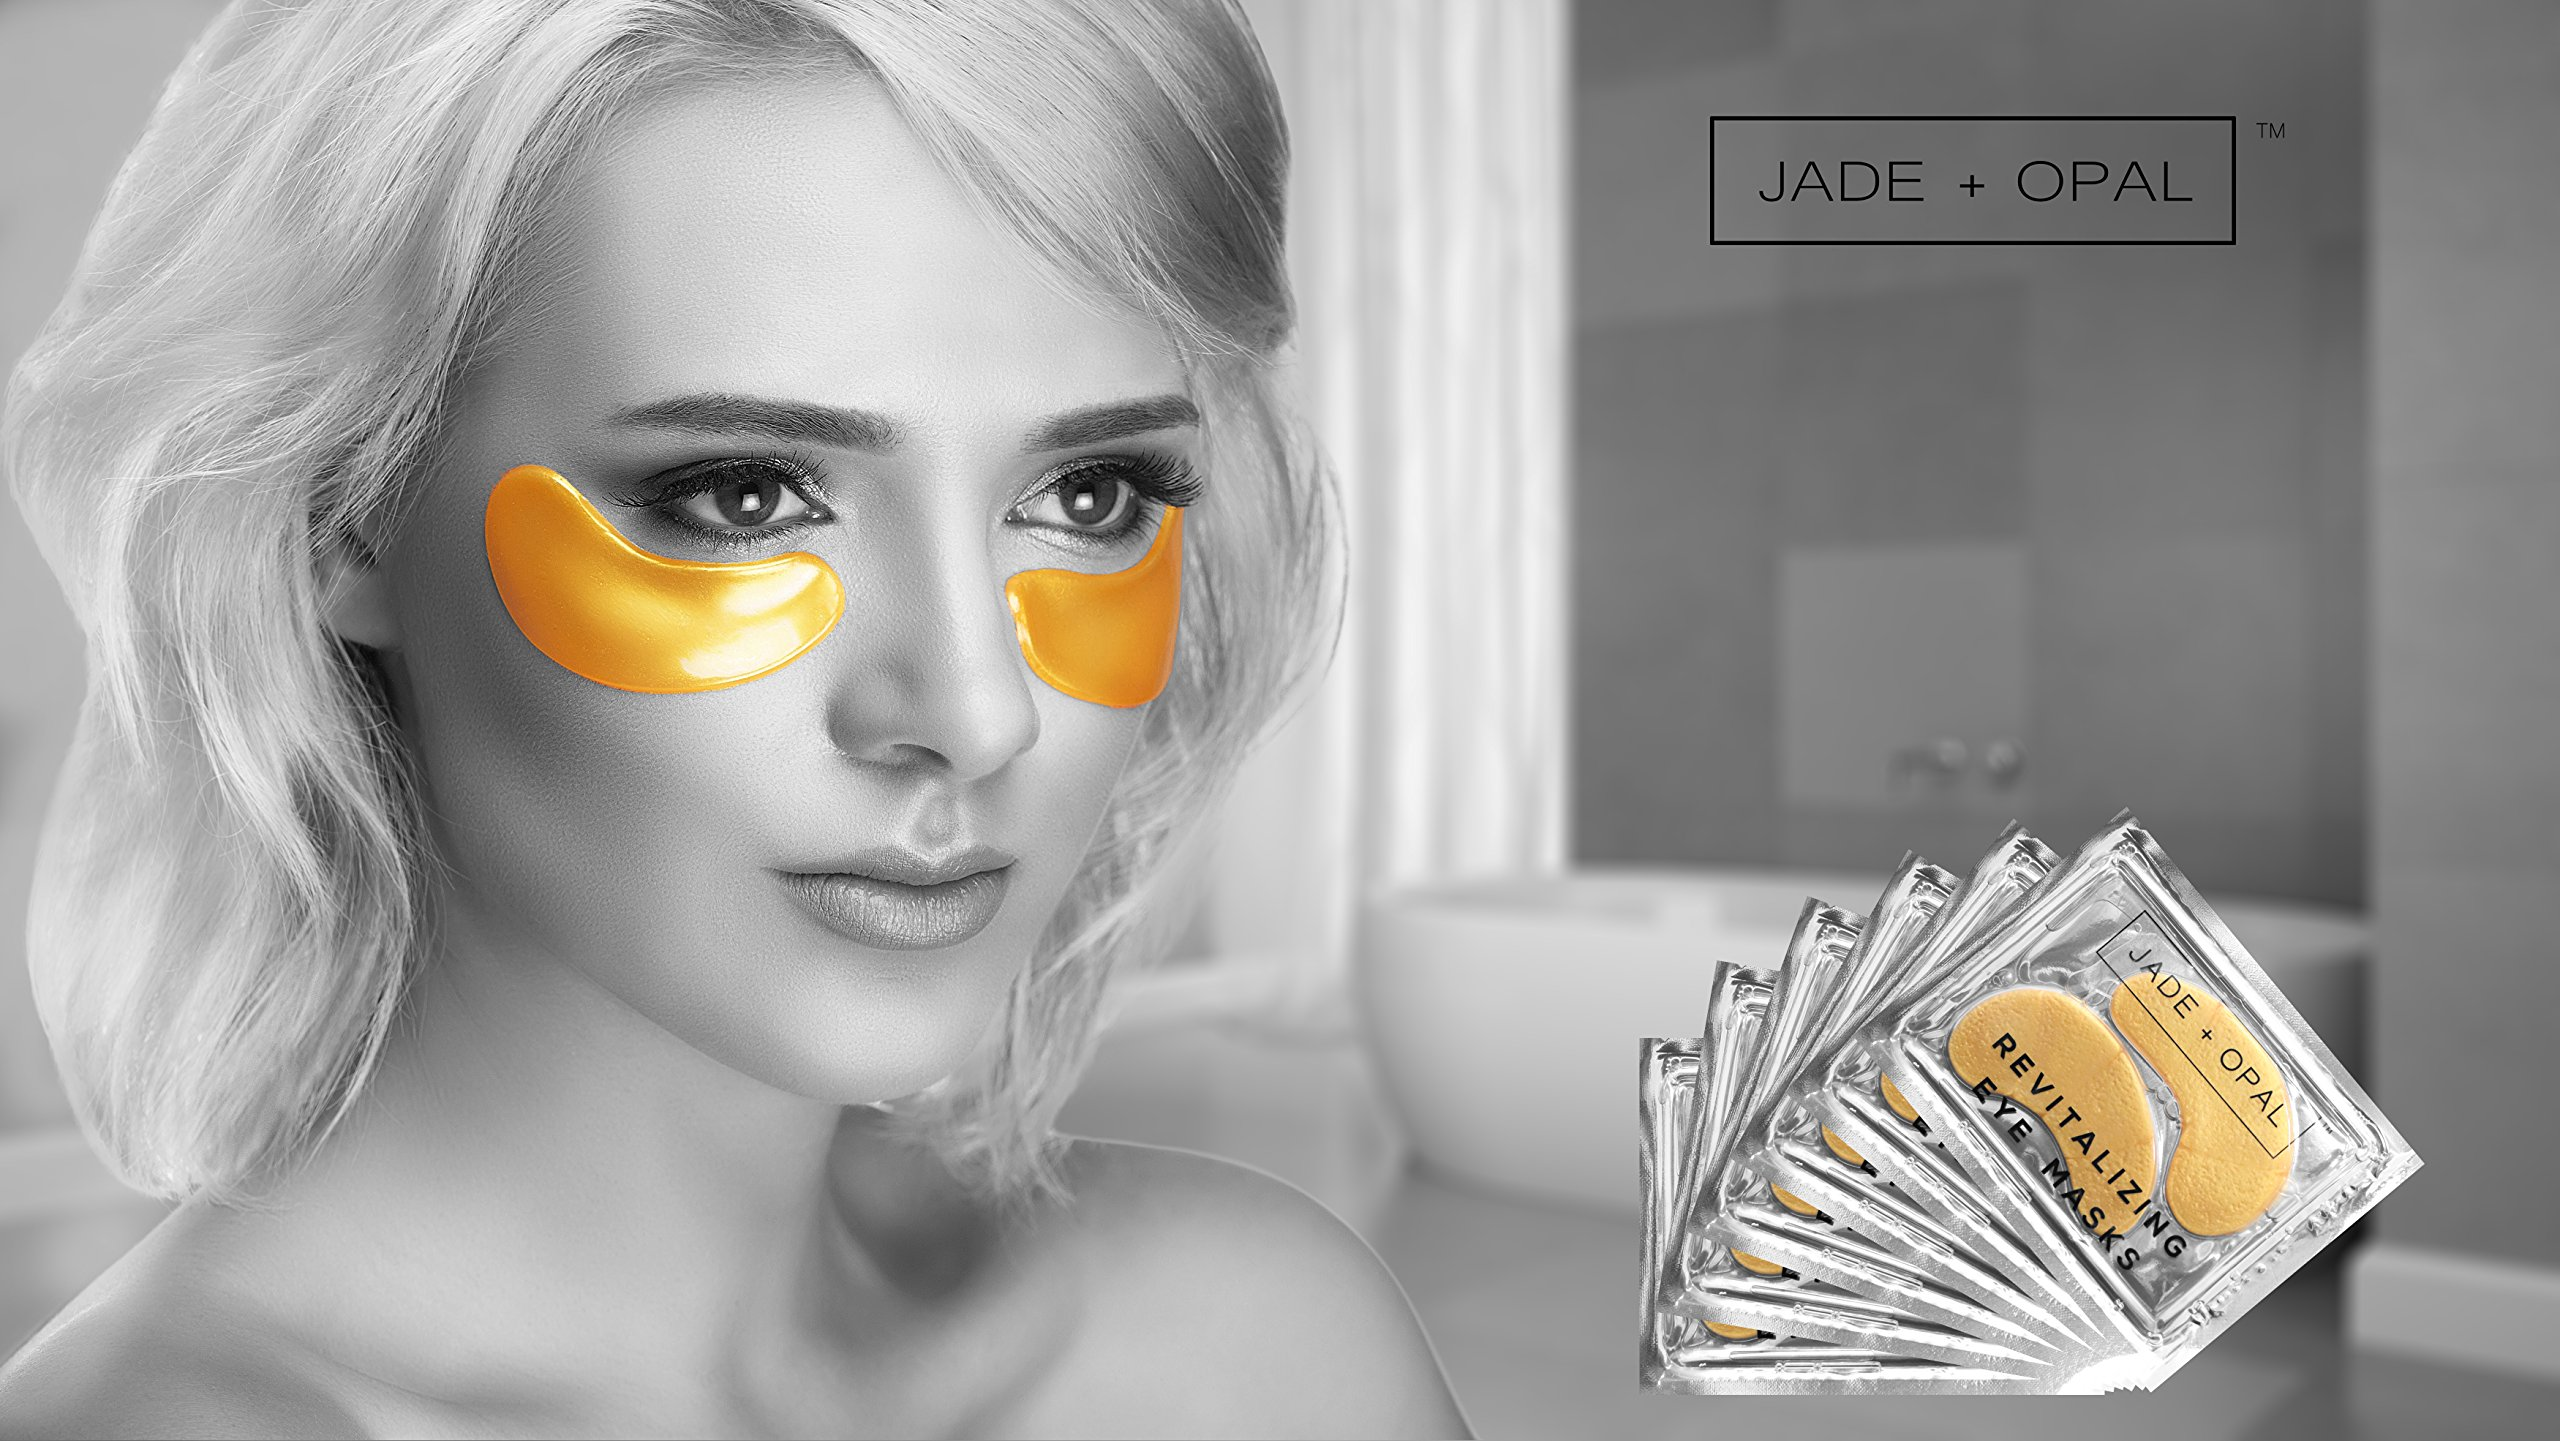 Jade and Opal Gold Collagen Revitalizing Eye Mask, 20 Pairs (Pack of 1) by Jade and Opal (Image #5)